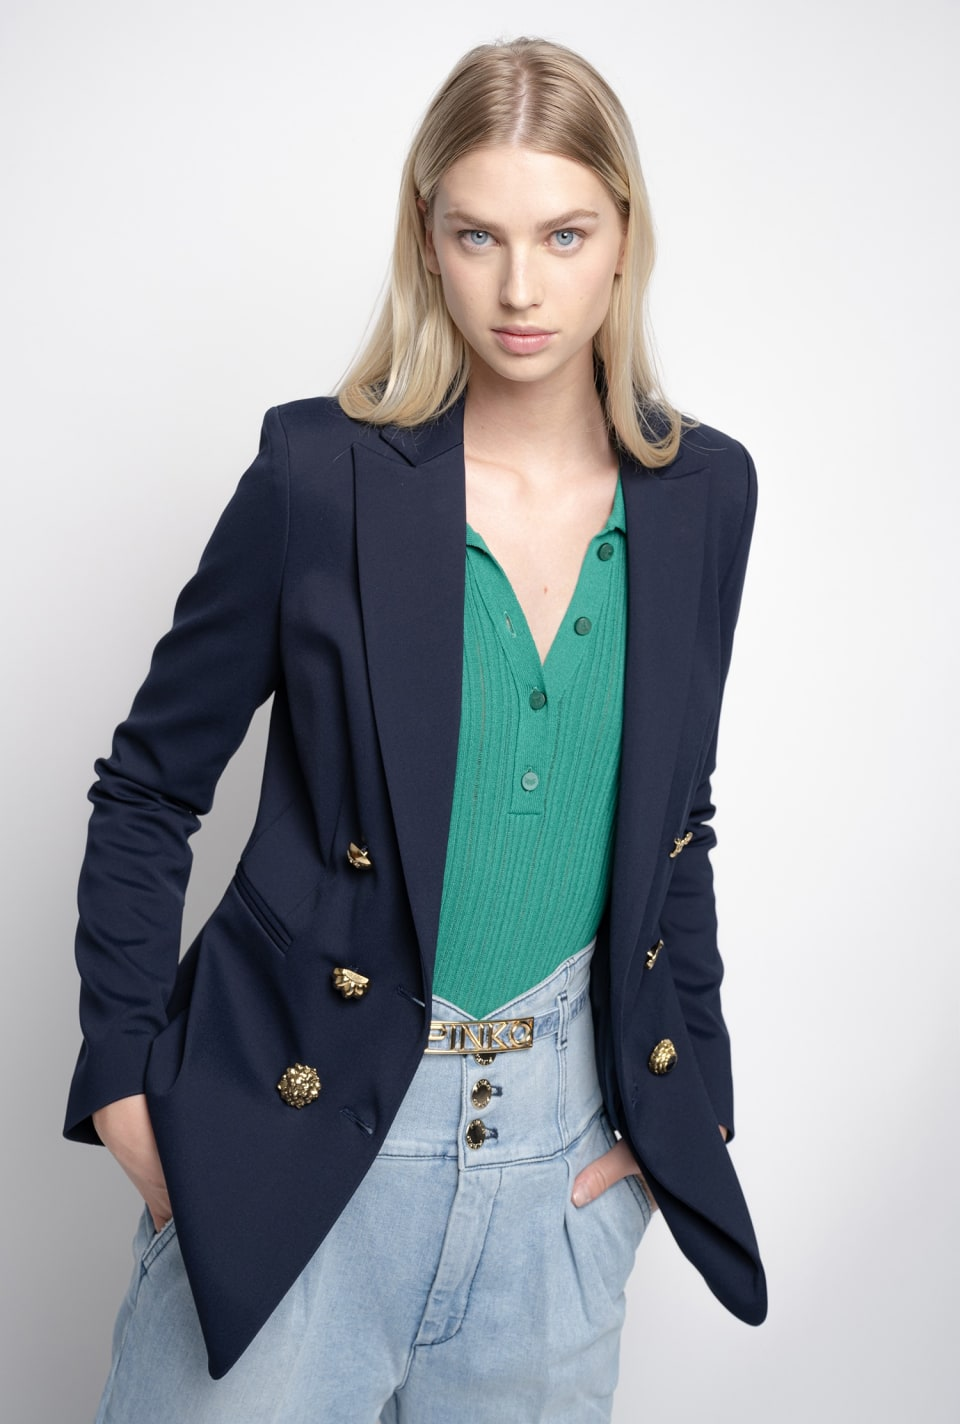 Sailor-style blazer with jewel buttons - Pinko